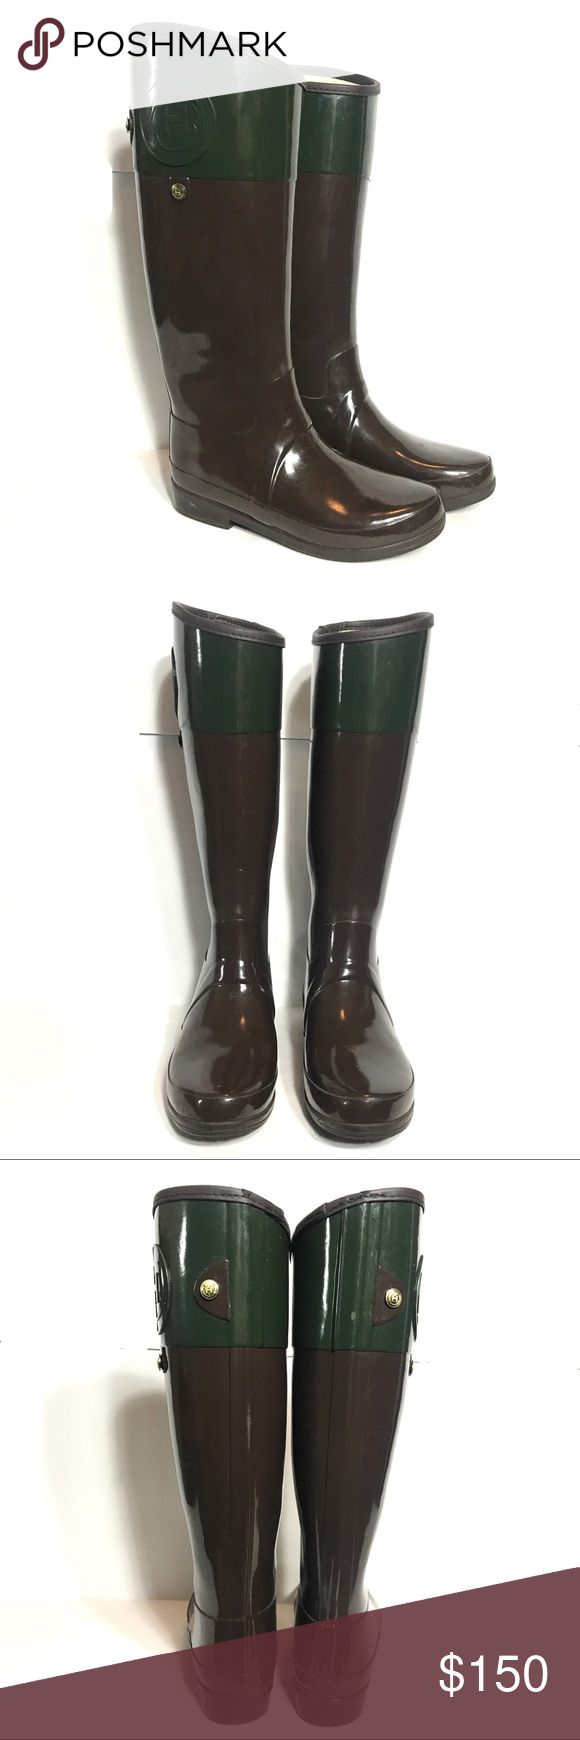 "Hunter Regent Carlyle Tall Riding Rain Boots US 8 Hunter Regent Carlyle Green Brown Tall Rubber Riding Rain Wellies Boot SZ US 8  *Great Used Condition! Some scuffs and label wearing/blue denim staining on inside. Please see pictures.  Measurements: 1.5"" Heel Height 17"" Shaft Height (at highest point) Hunter Boots Shoes Winter & Rain Boots"